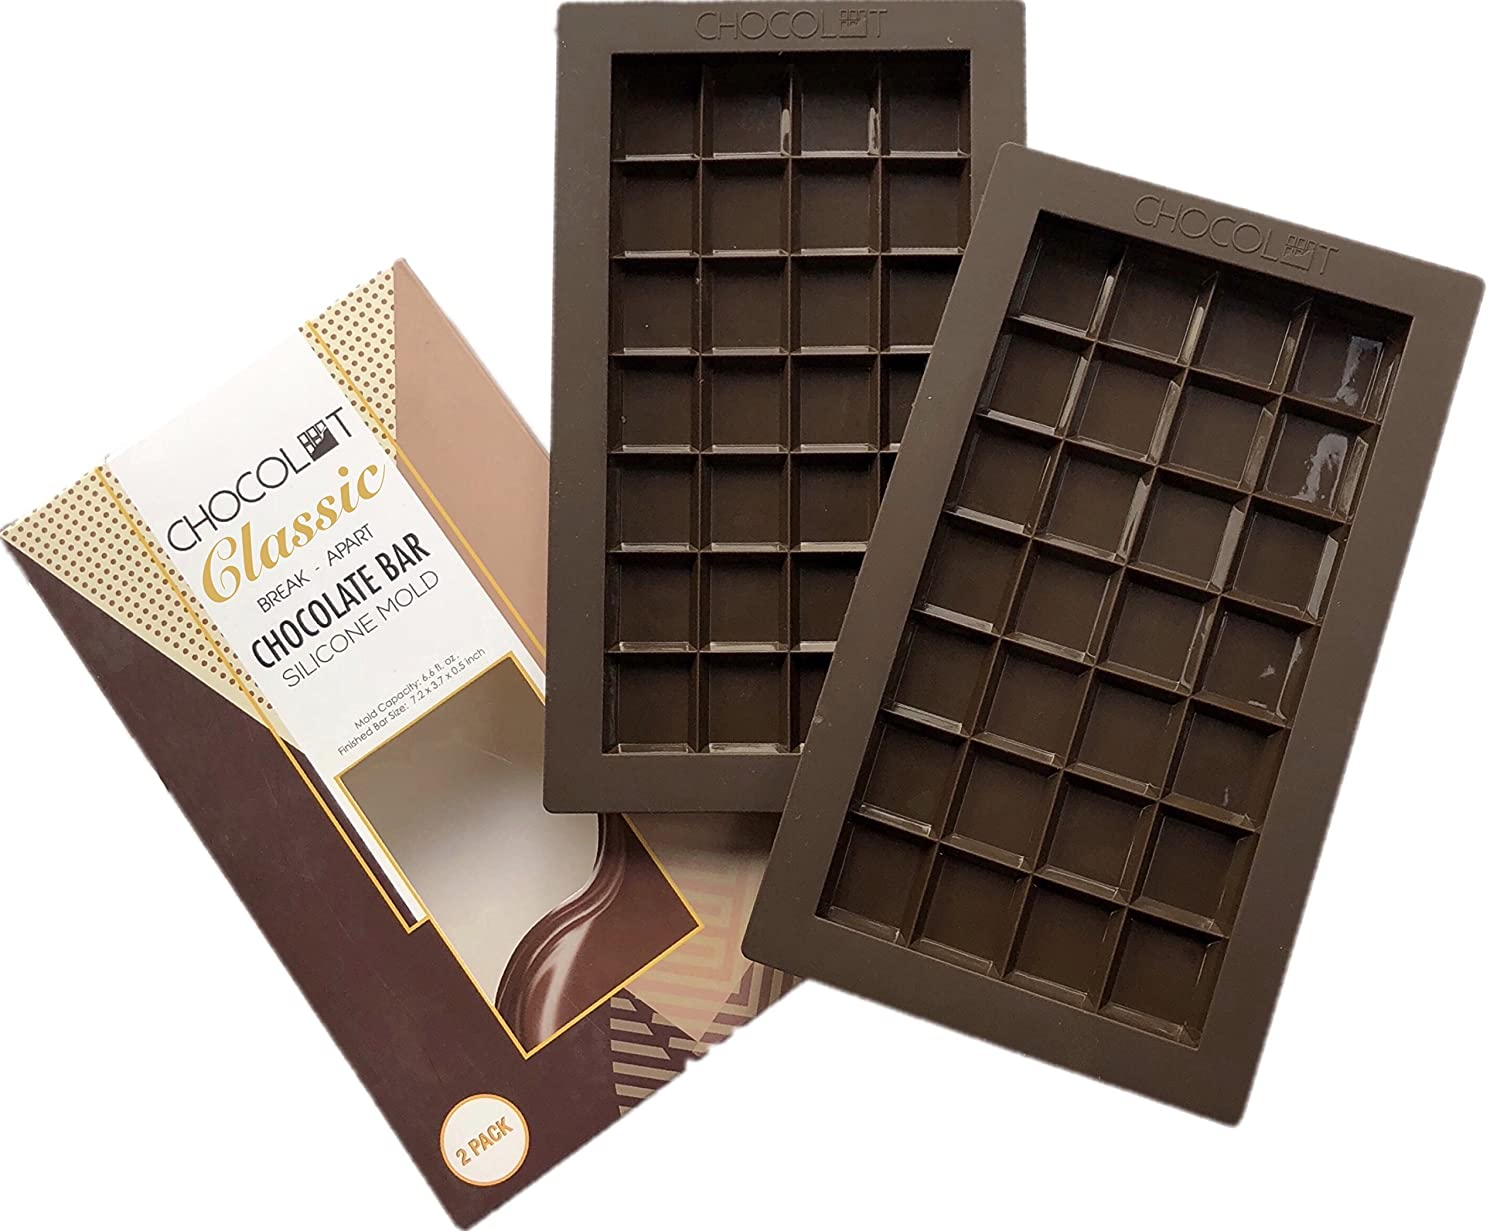 CHOCOLOT Classic 2 Silicone Break-Apart Chocolate Bar Molds, LFGB Grade Silicone, BPA Free, Oven Safe - 6.6 Fluid Ounce Capacity (2-Pack)